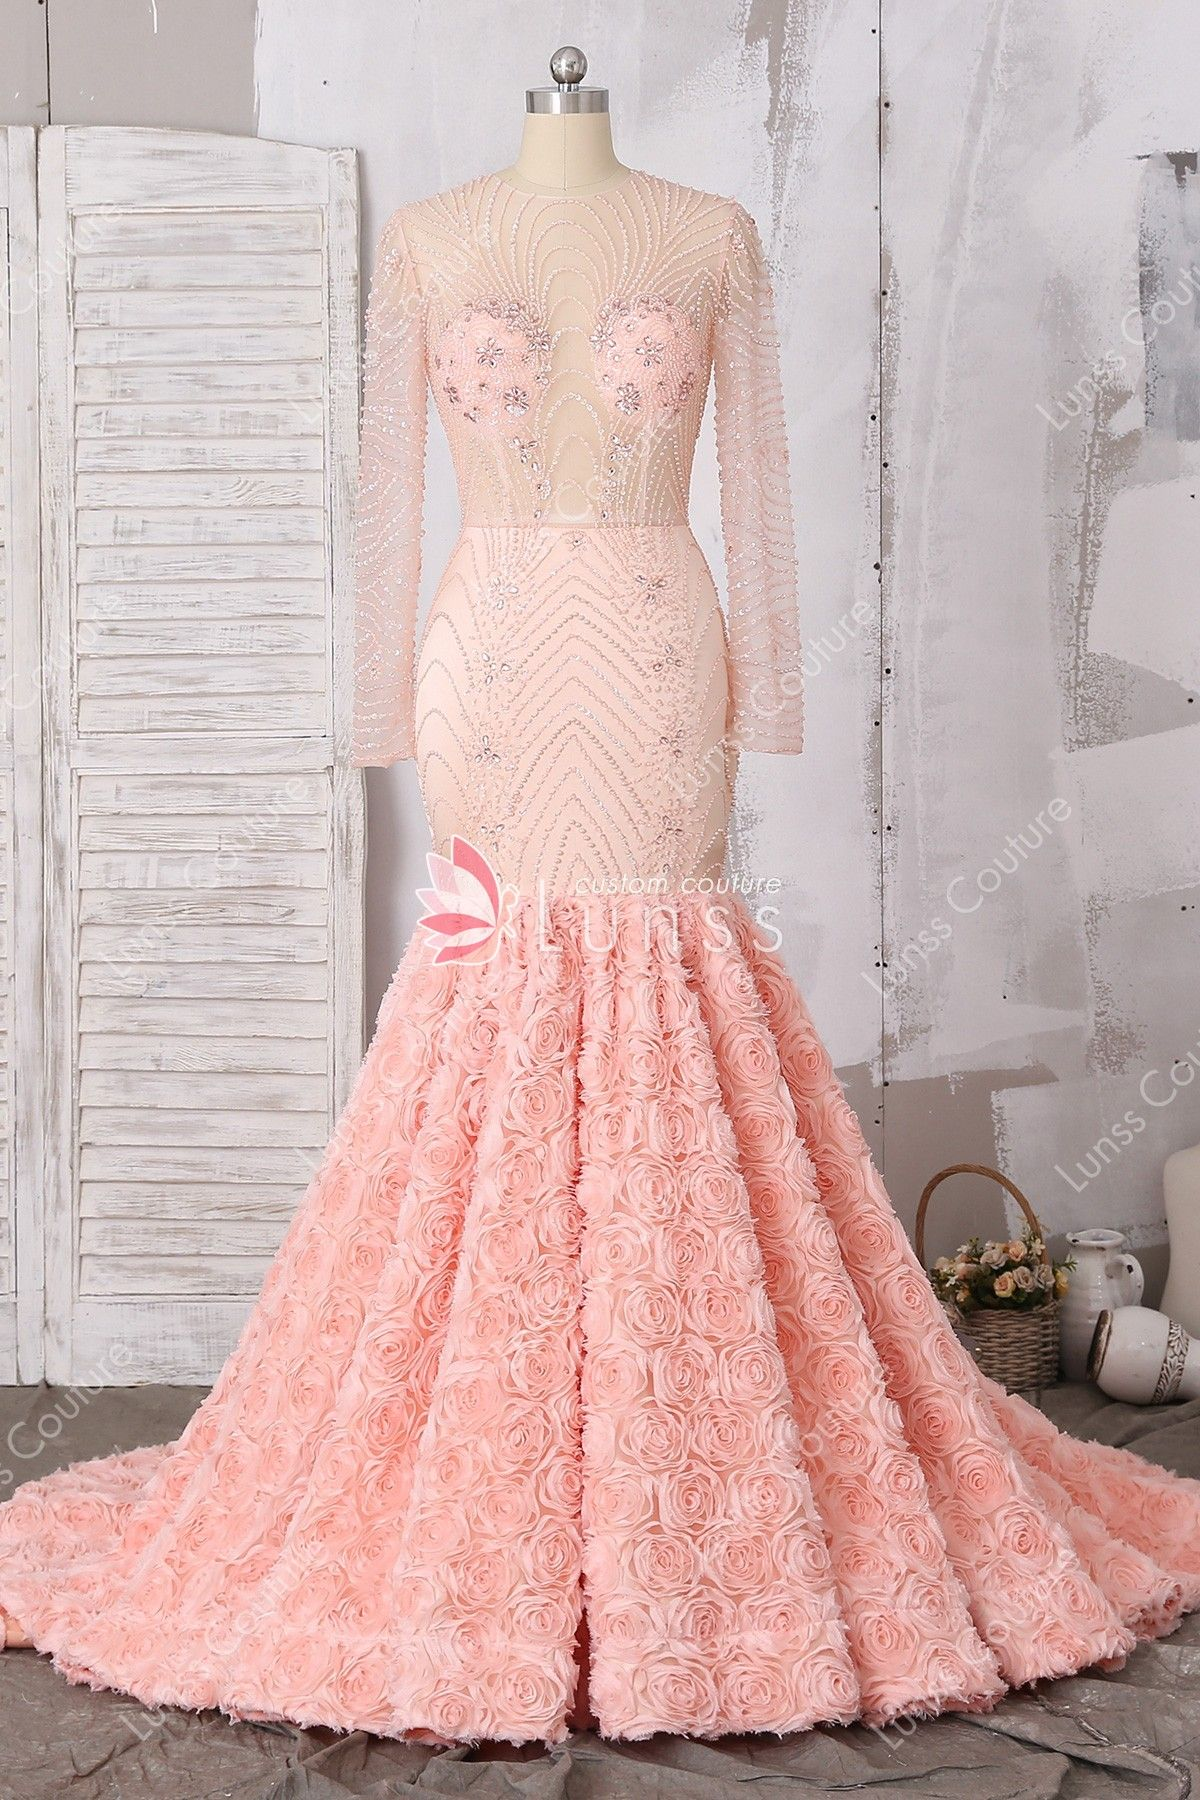 41600be14ac2 Luxury Long Sleeve Peach Pink Beaded Prom Dress with 3D Rose Court Train